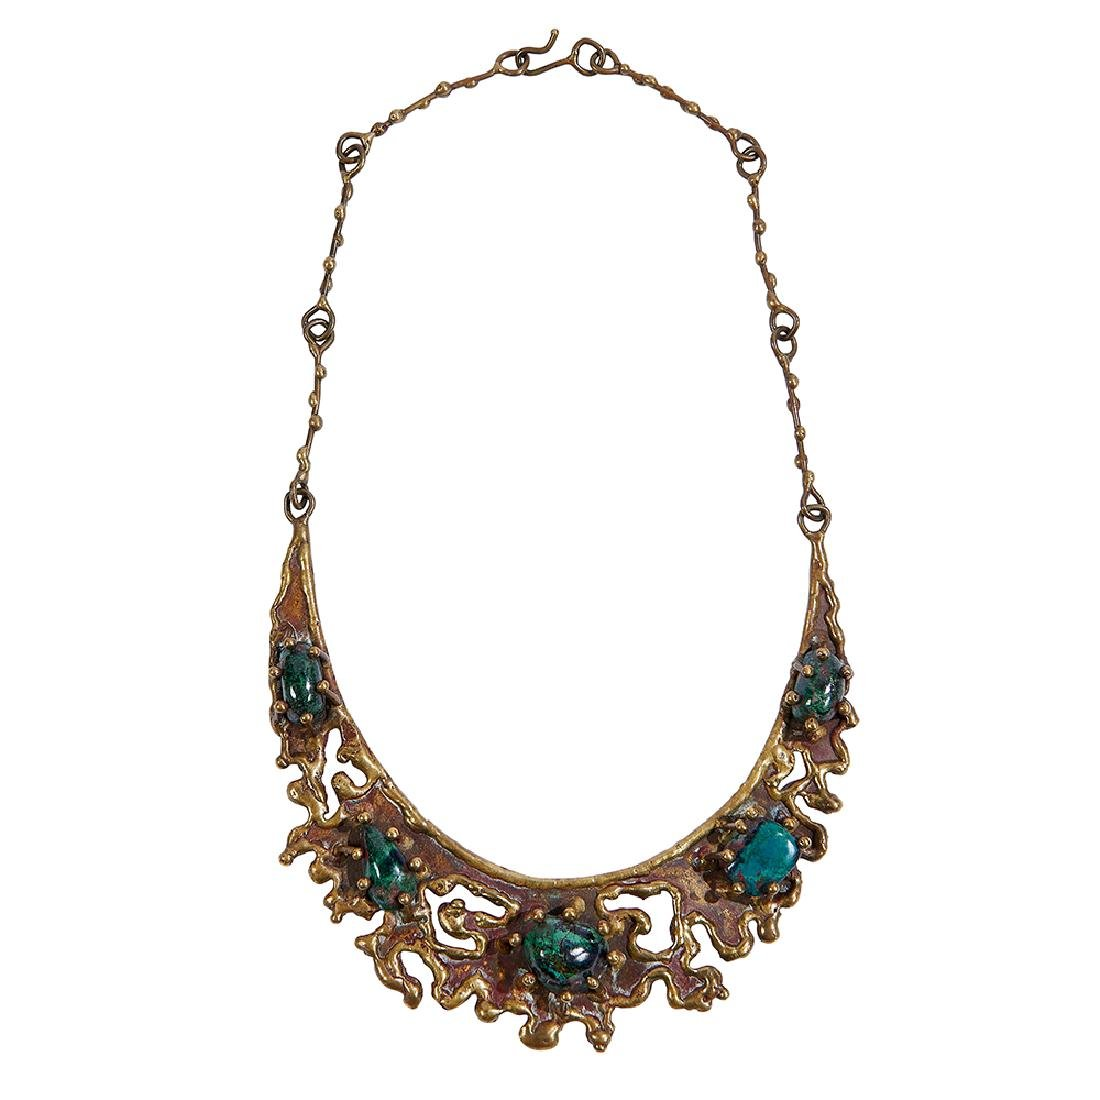 Pal Kepenyes collar necklace